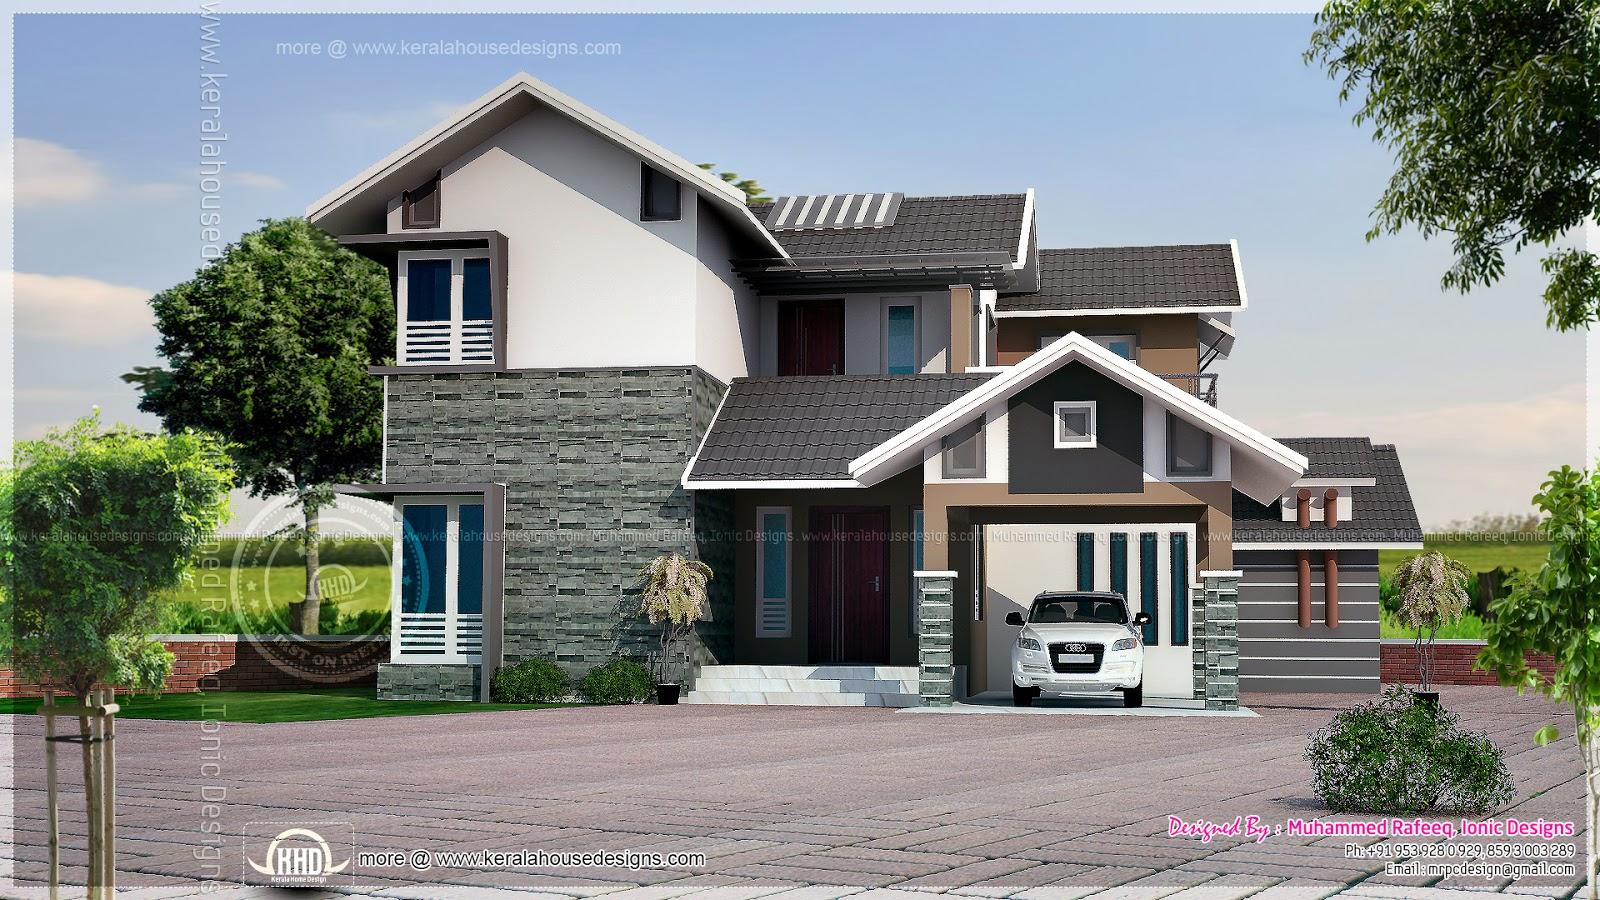 Roof Floor Elevation : Inspiring sloped roof house photo home building plans